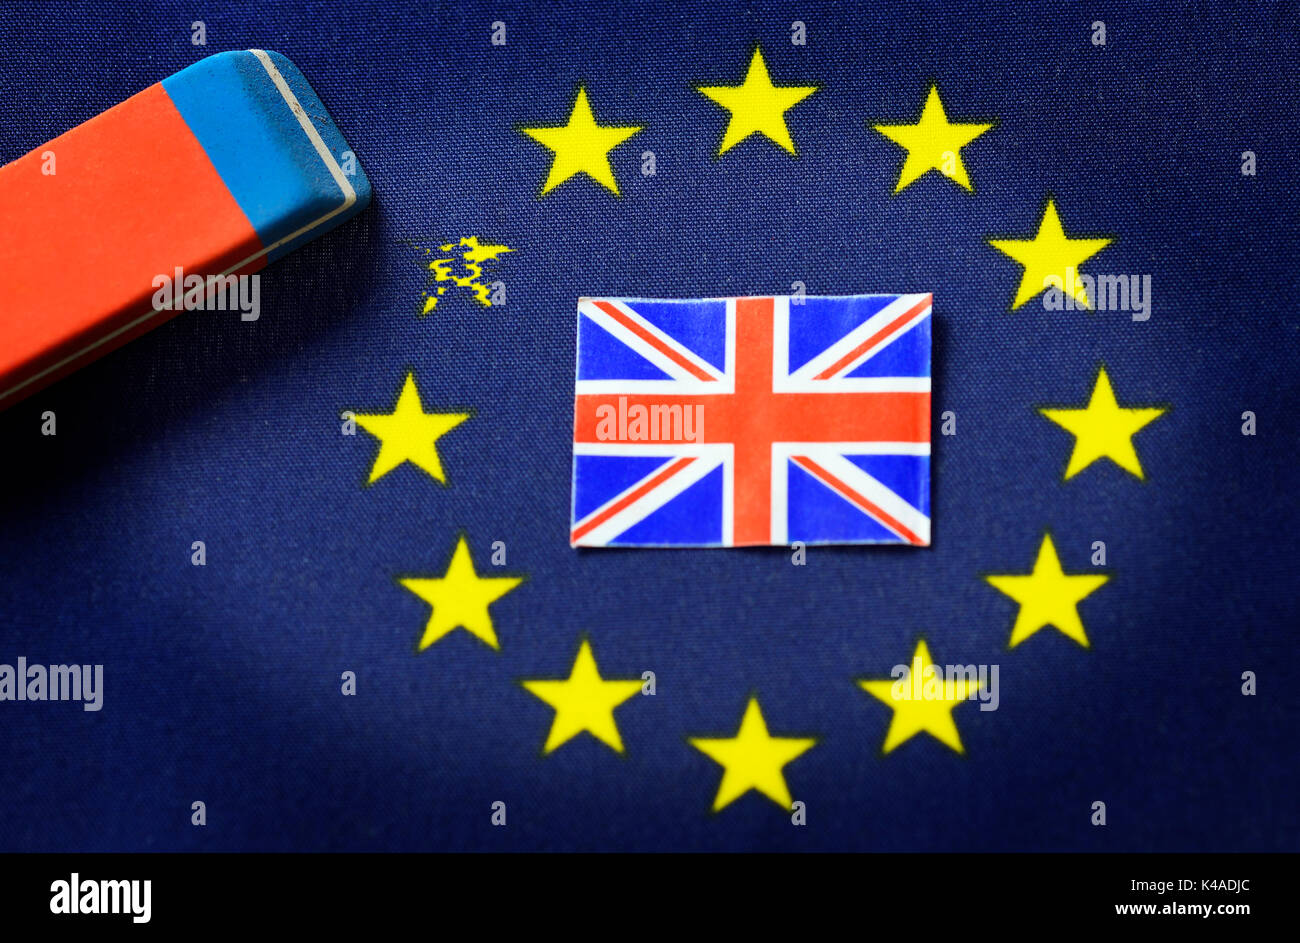 Flag Of Europe, Union Jack And Eraser, Brexit Stock Photo